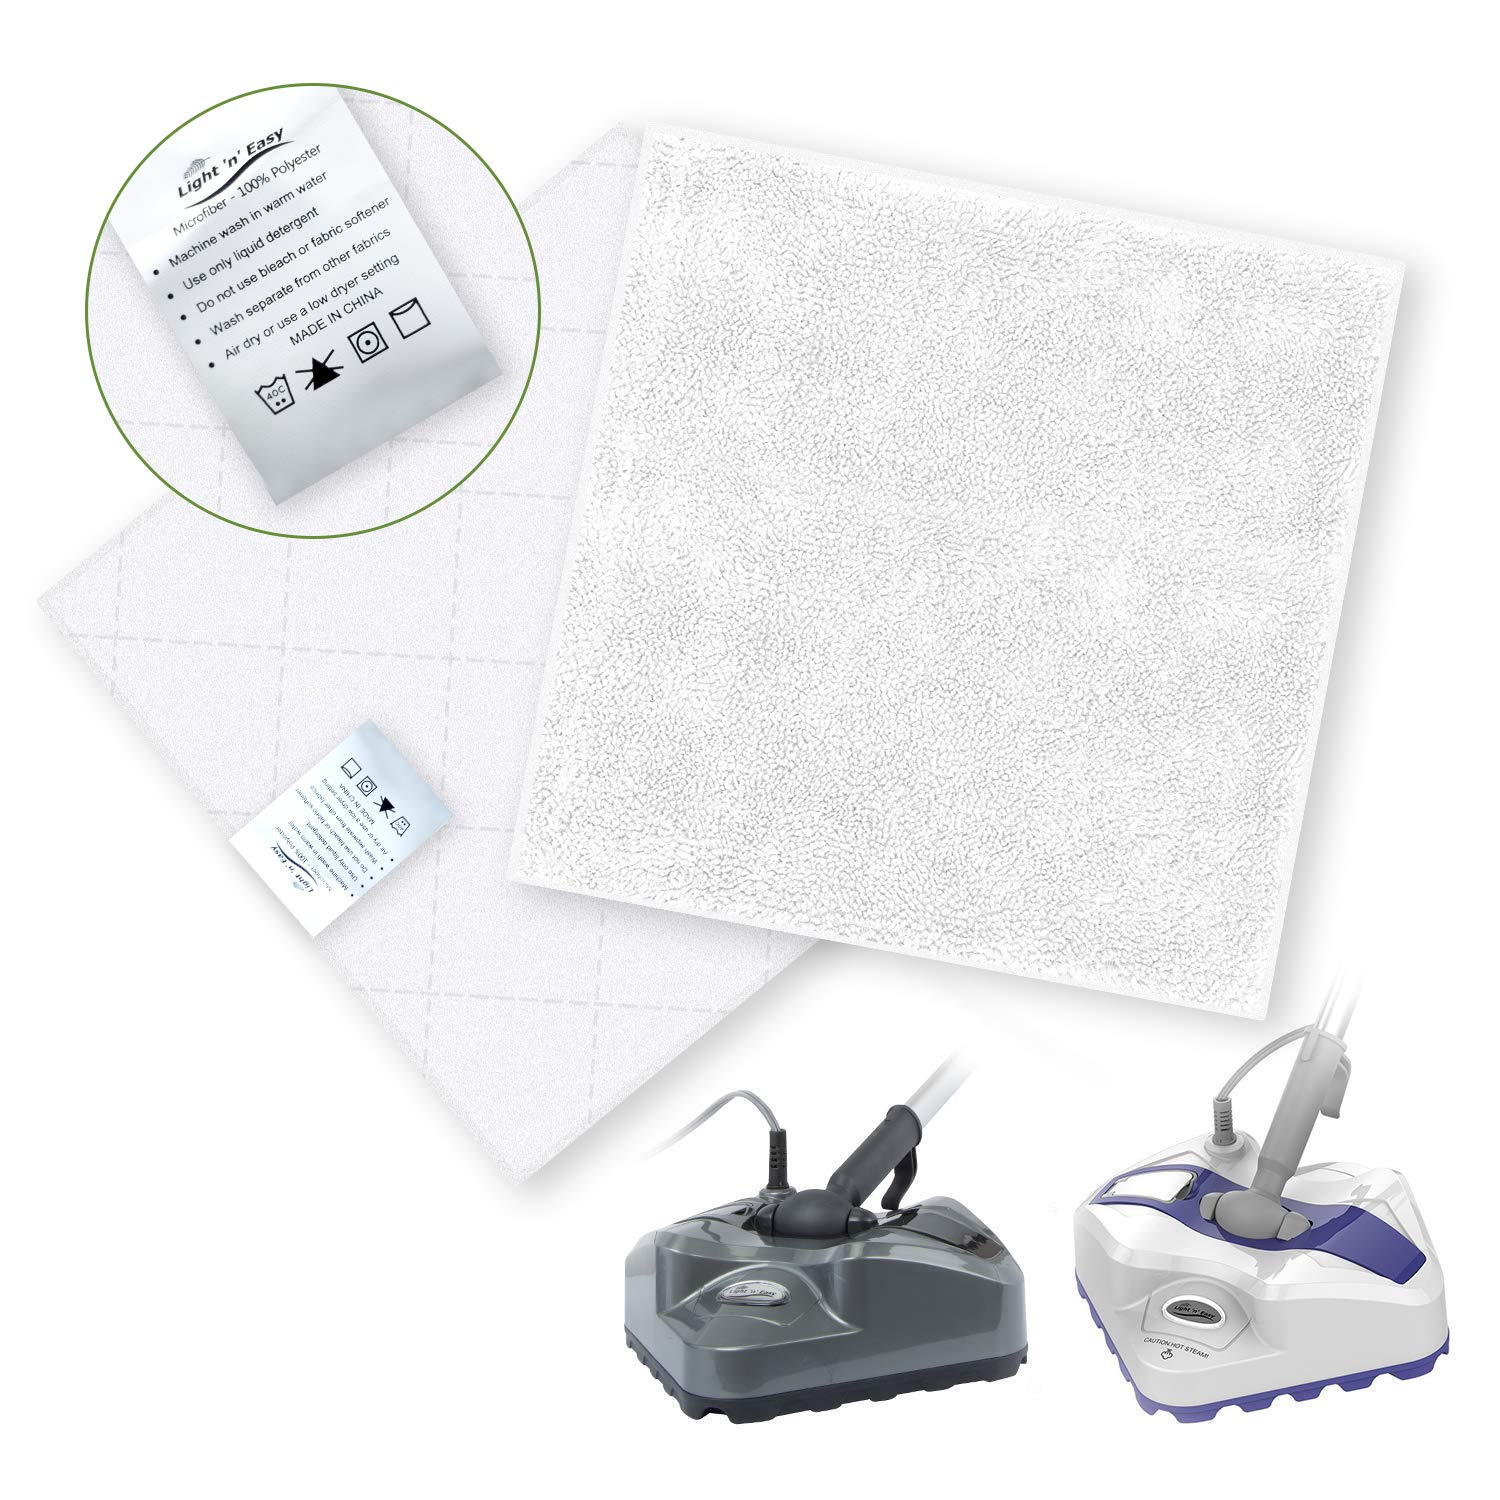 LIGHT 'N' EASY Steam Mop Pads Replacement 2 Sets of Microfiber Cleaning Pads Washable Microfiber Mop Pads with 3 Layers, Steam Pocket Mop Pads for Most Hard Flooring